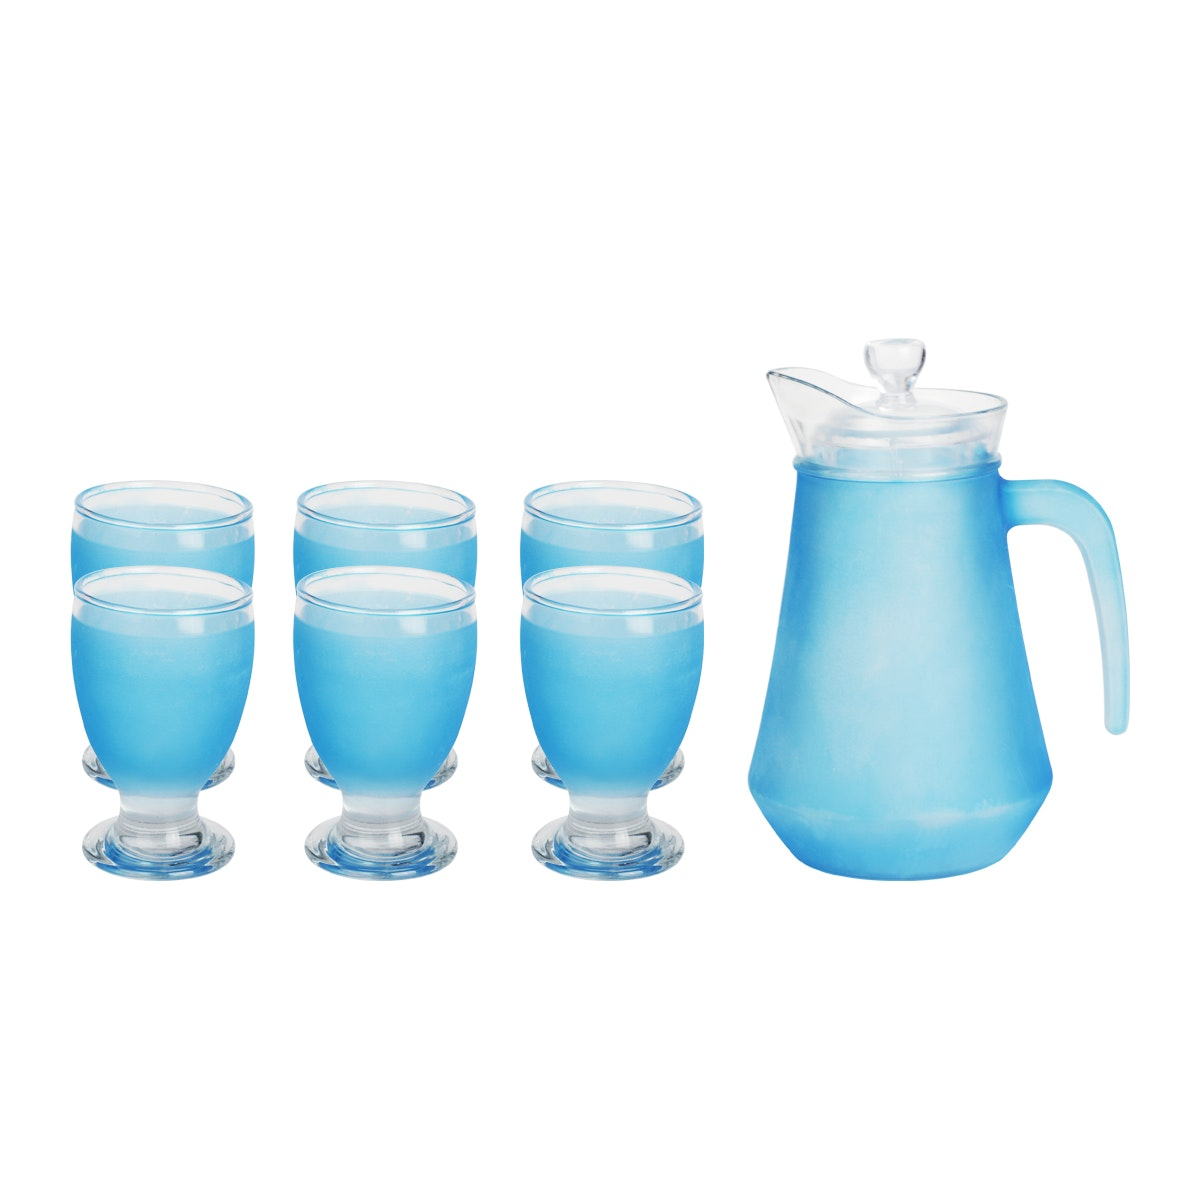 Kedaung Torino Pitcher Set WJ-1000C.HFW-7/SBL7-3GB